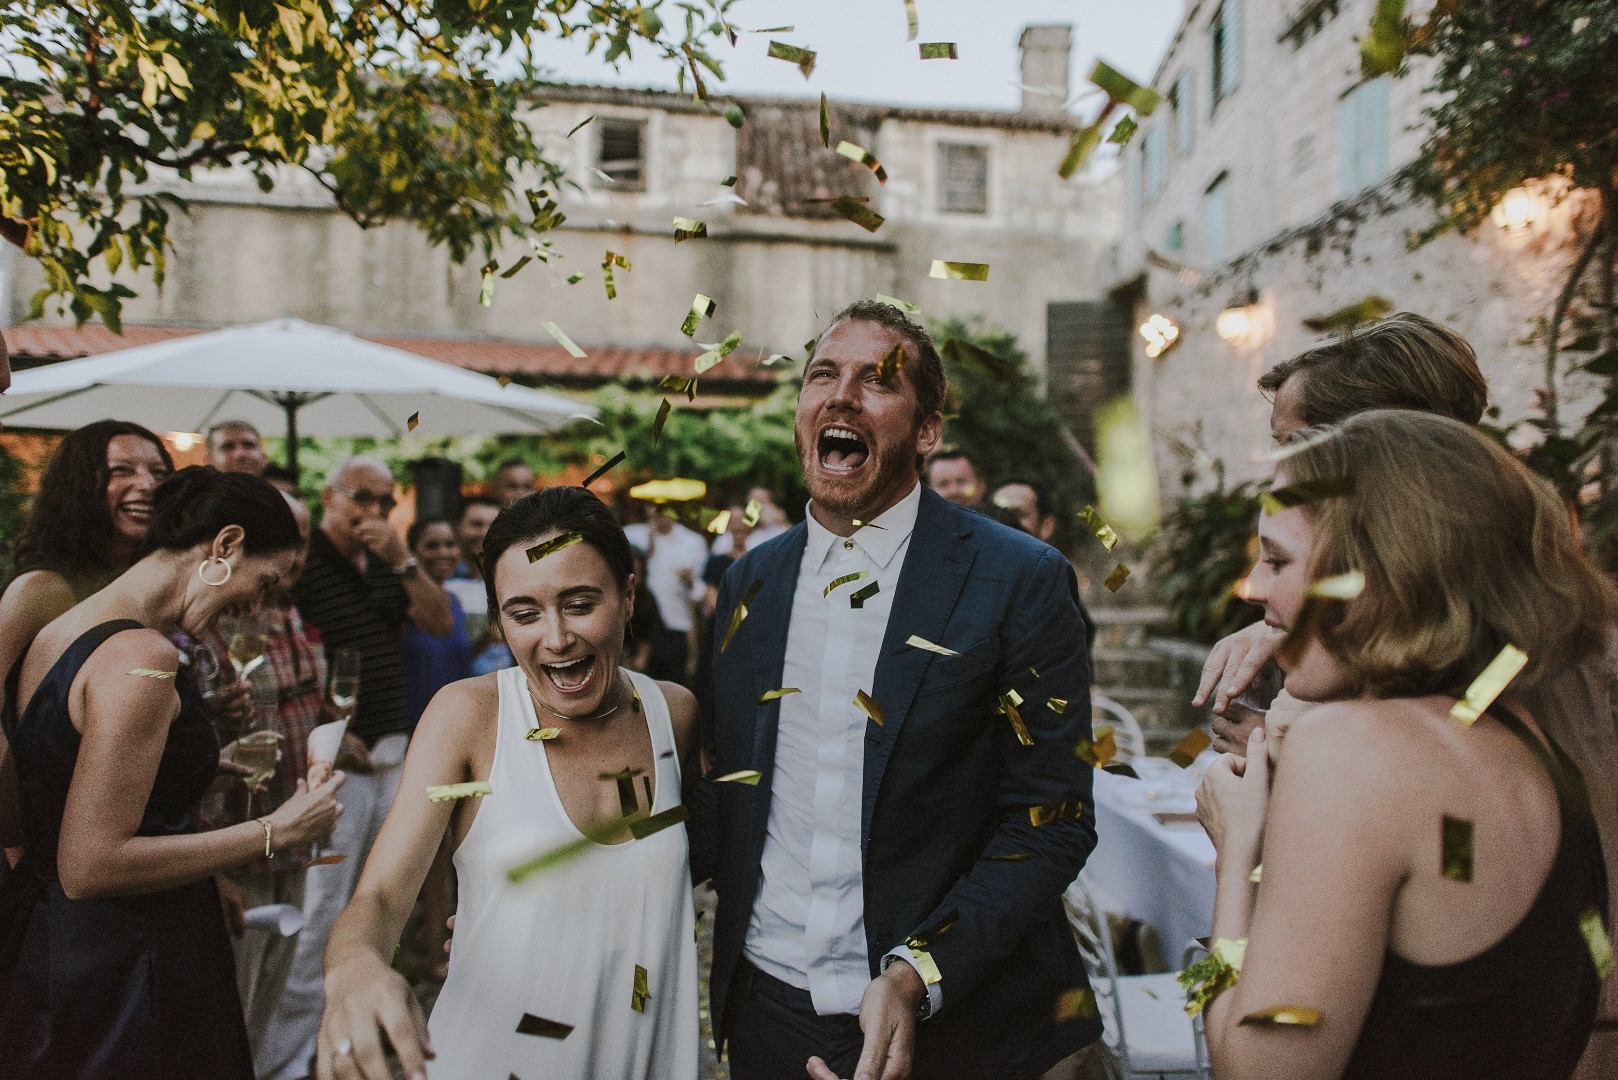 This is a photo of the happy couple arriving to the reception. There are golden confetti flying around everywhere and the guests around them are laughing. The groom is wearing a stylish navy suit while the bride has an updo and a simple white dress.